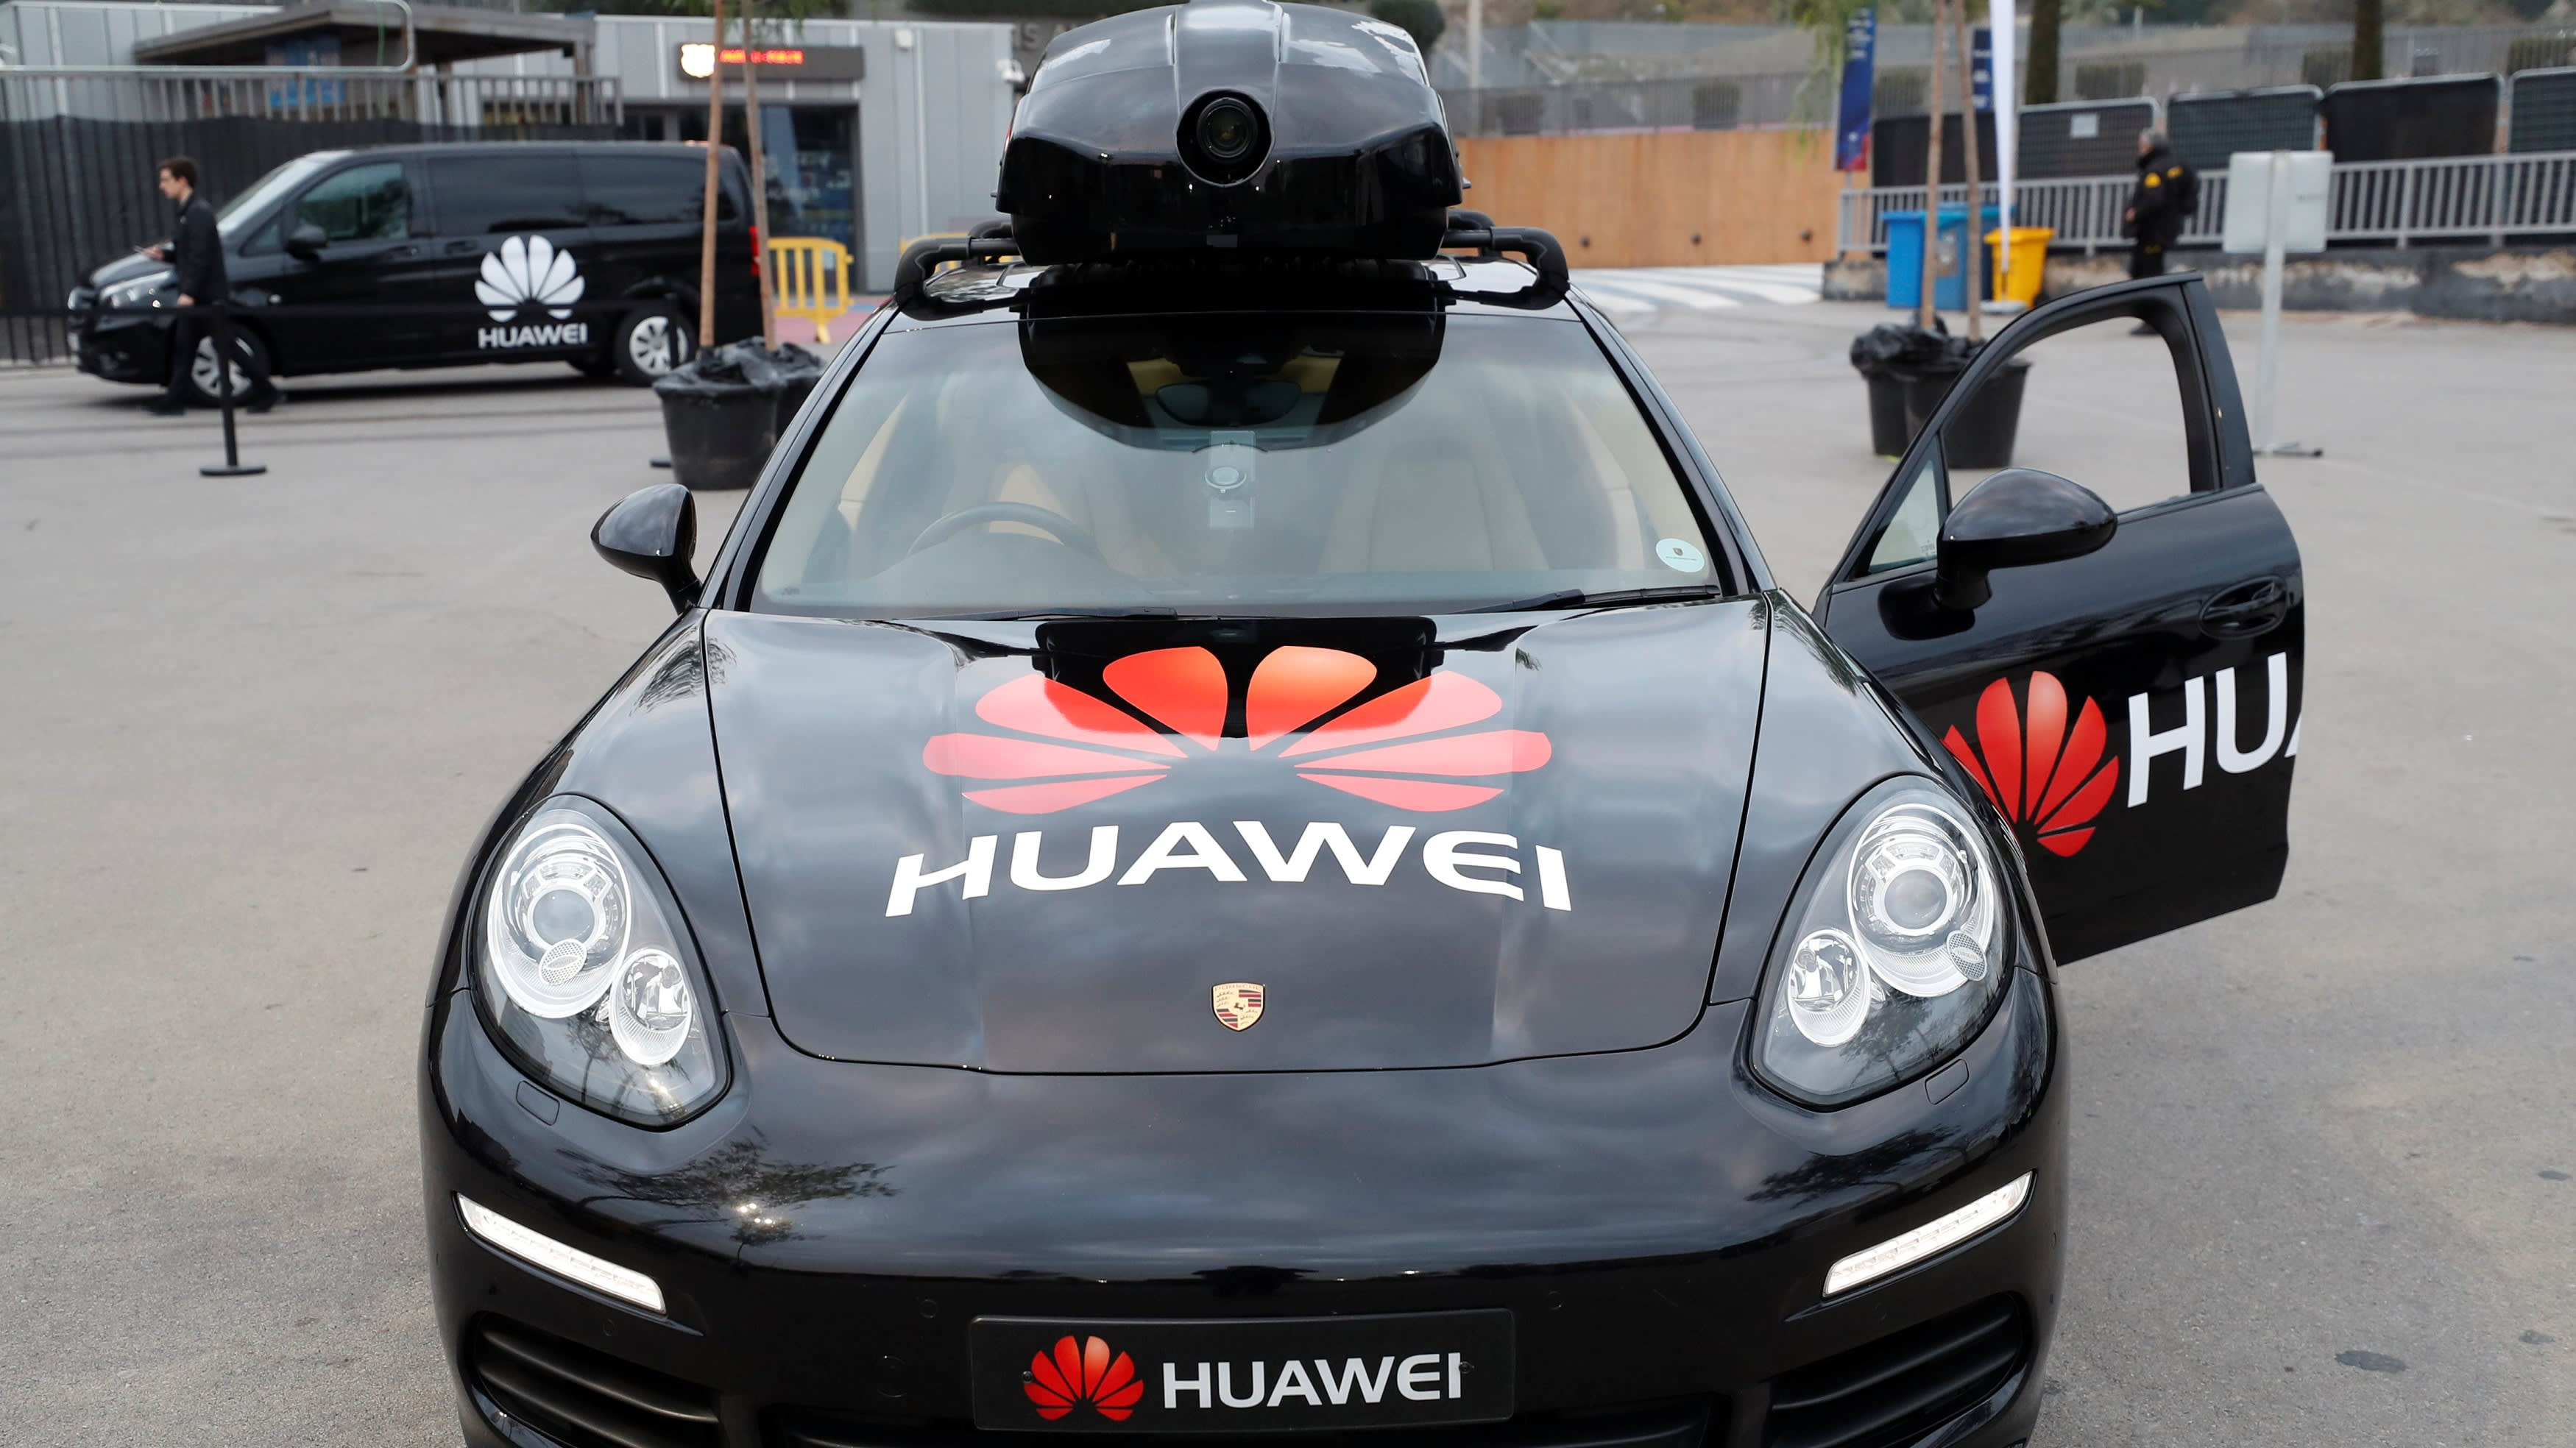 In depth: Will Huawei become China's Tesla challenger?